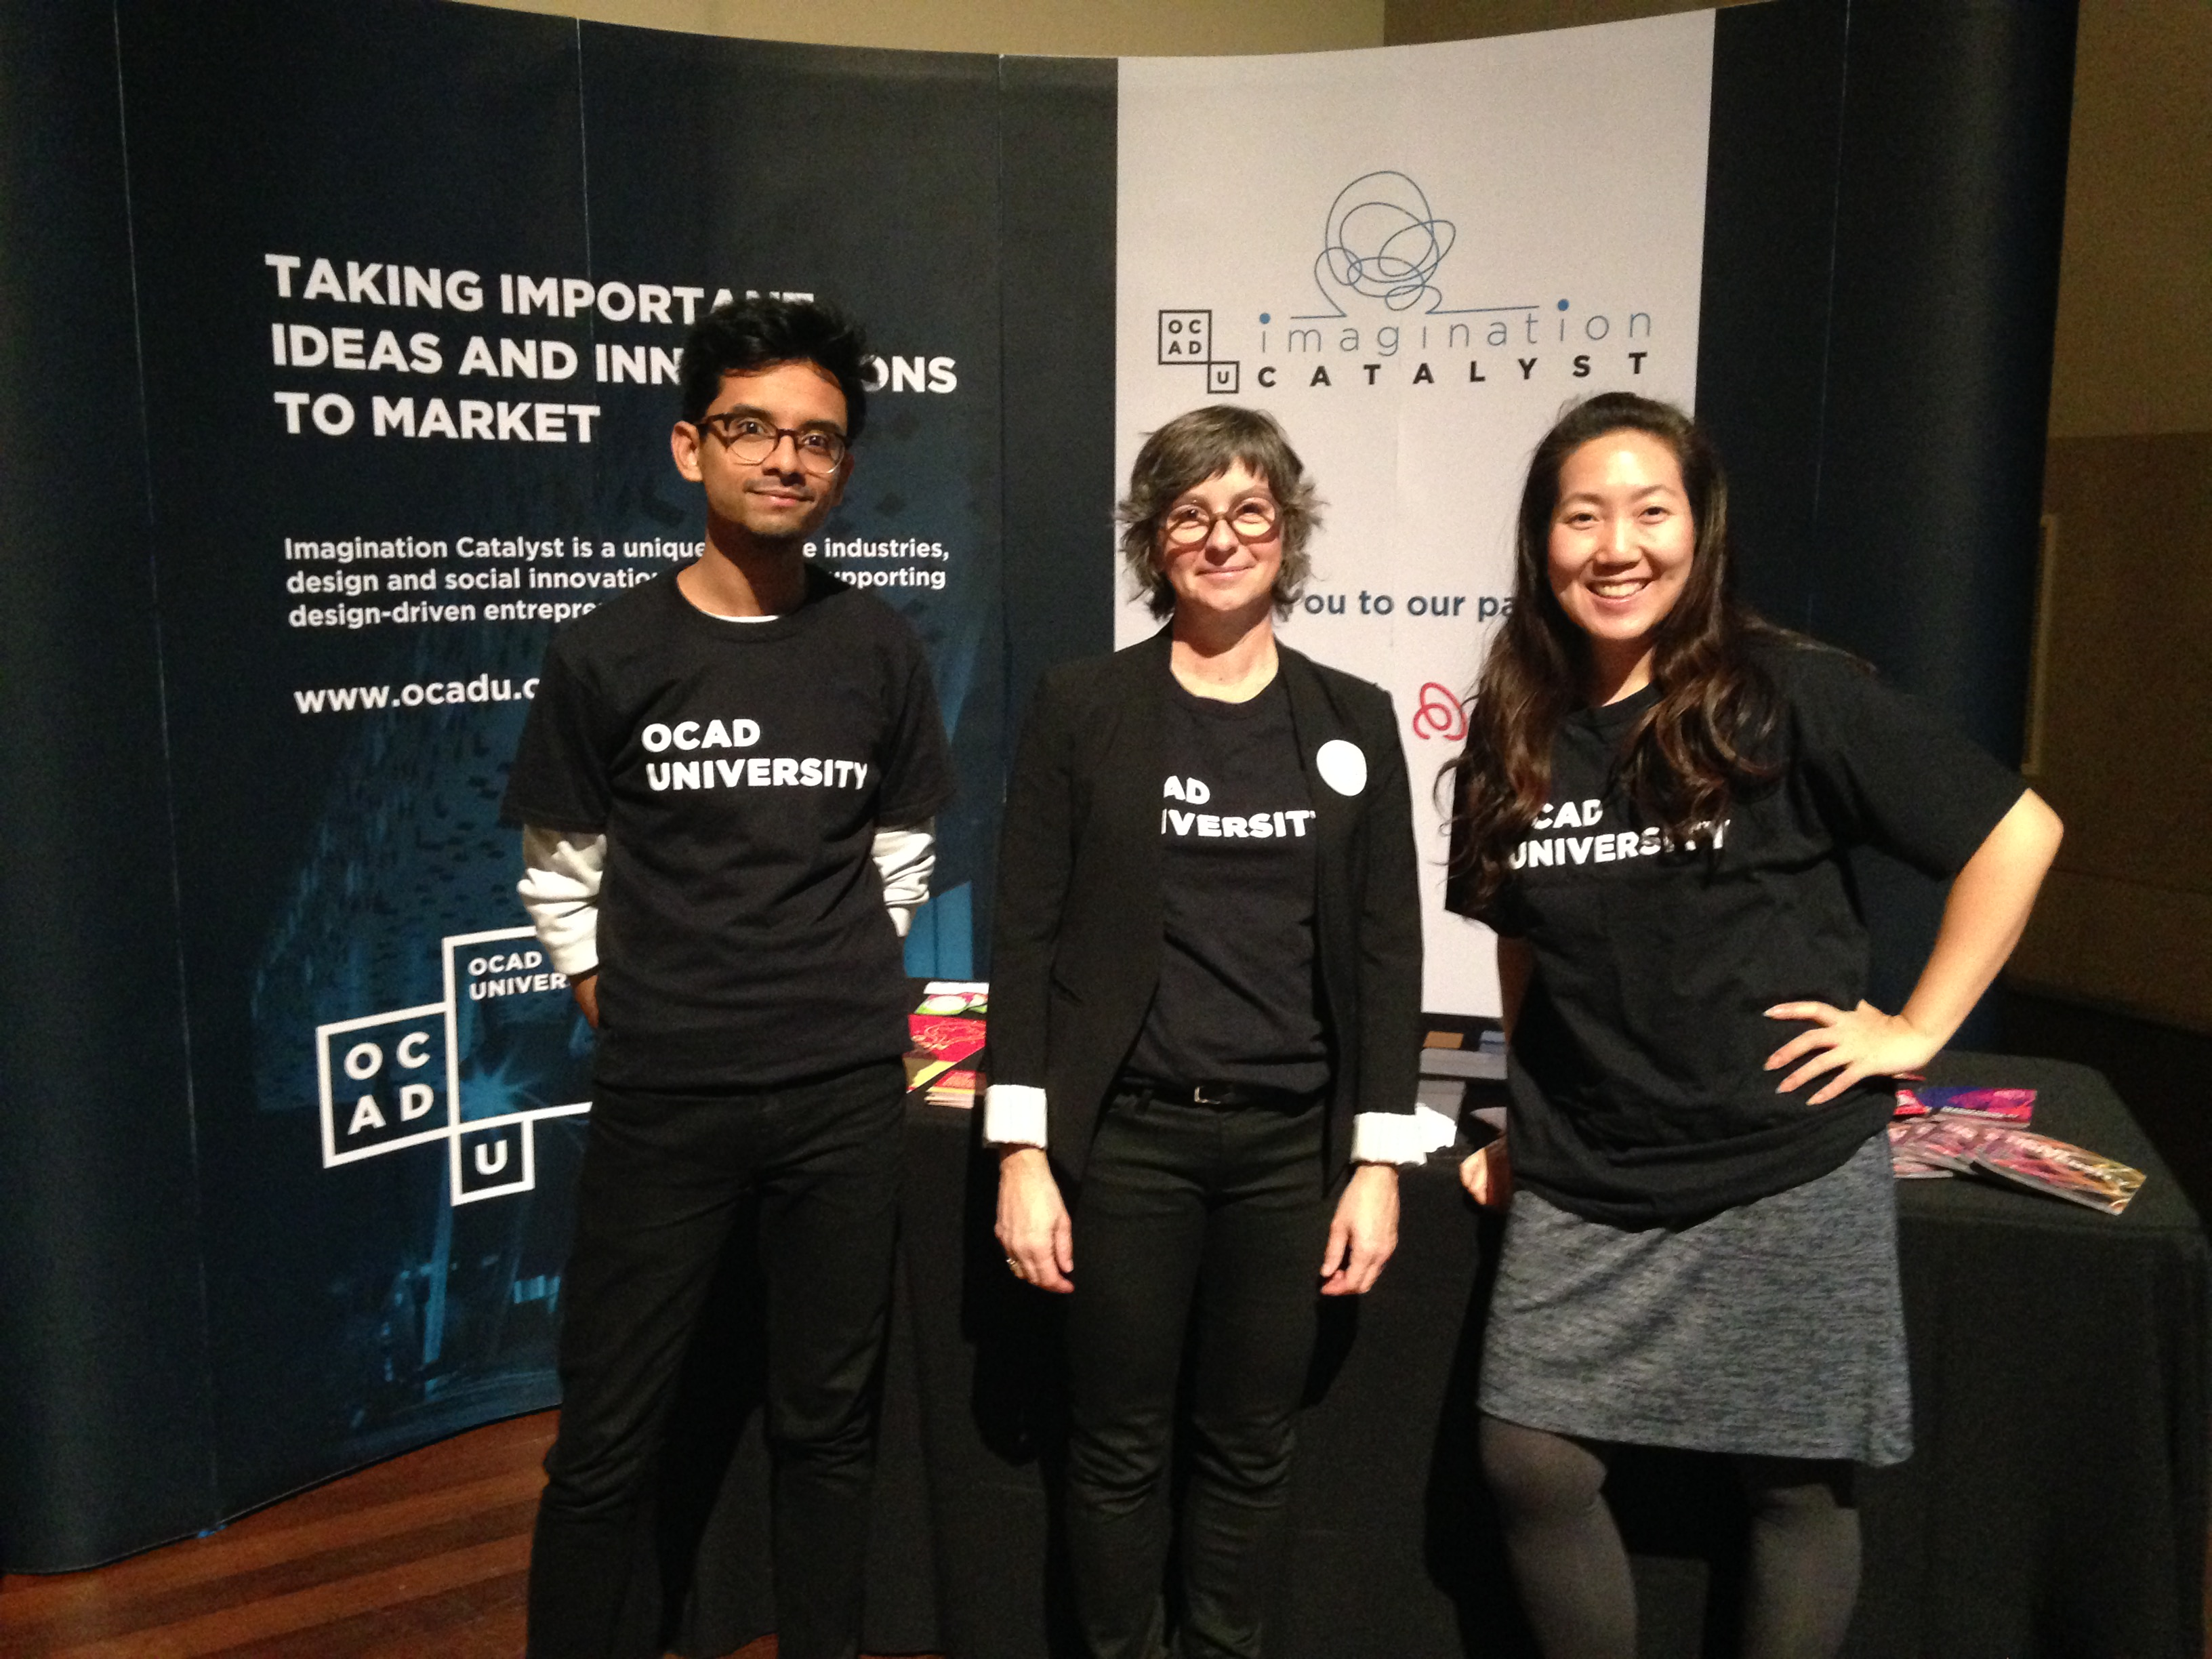 left to right: Sabid Ali and Kathryn Ellis, Imagination Catalyst and Karen Kwon, Executive Education, OCAD U